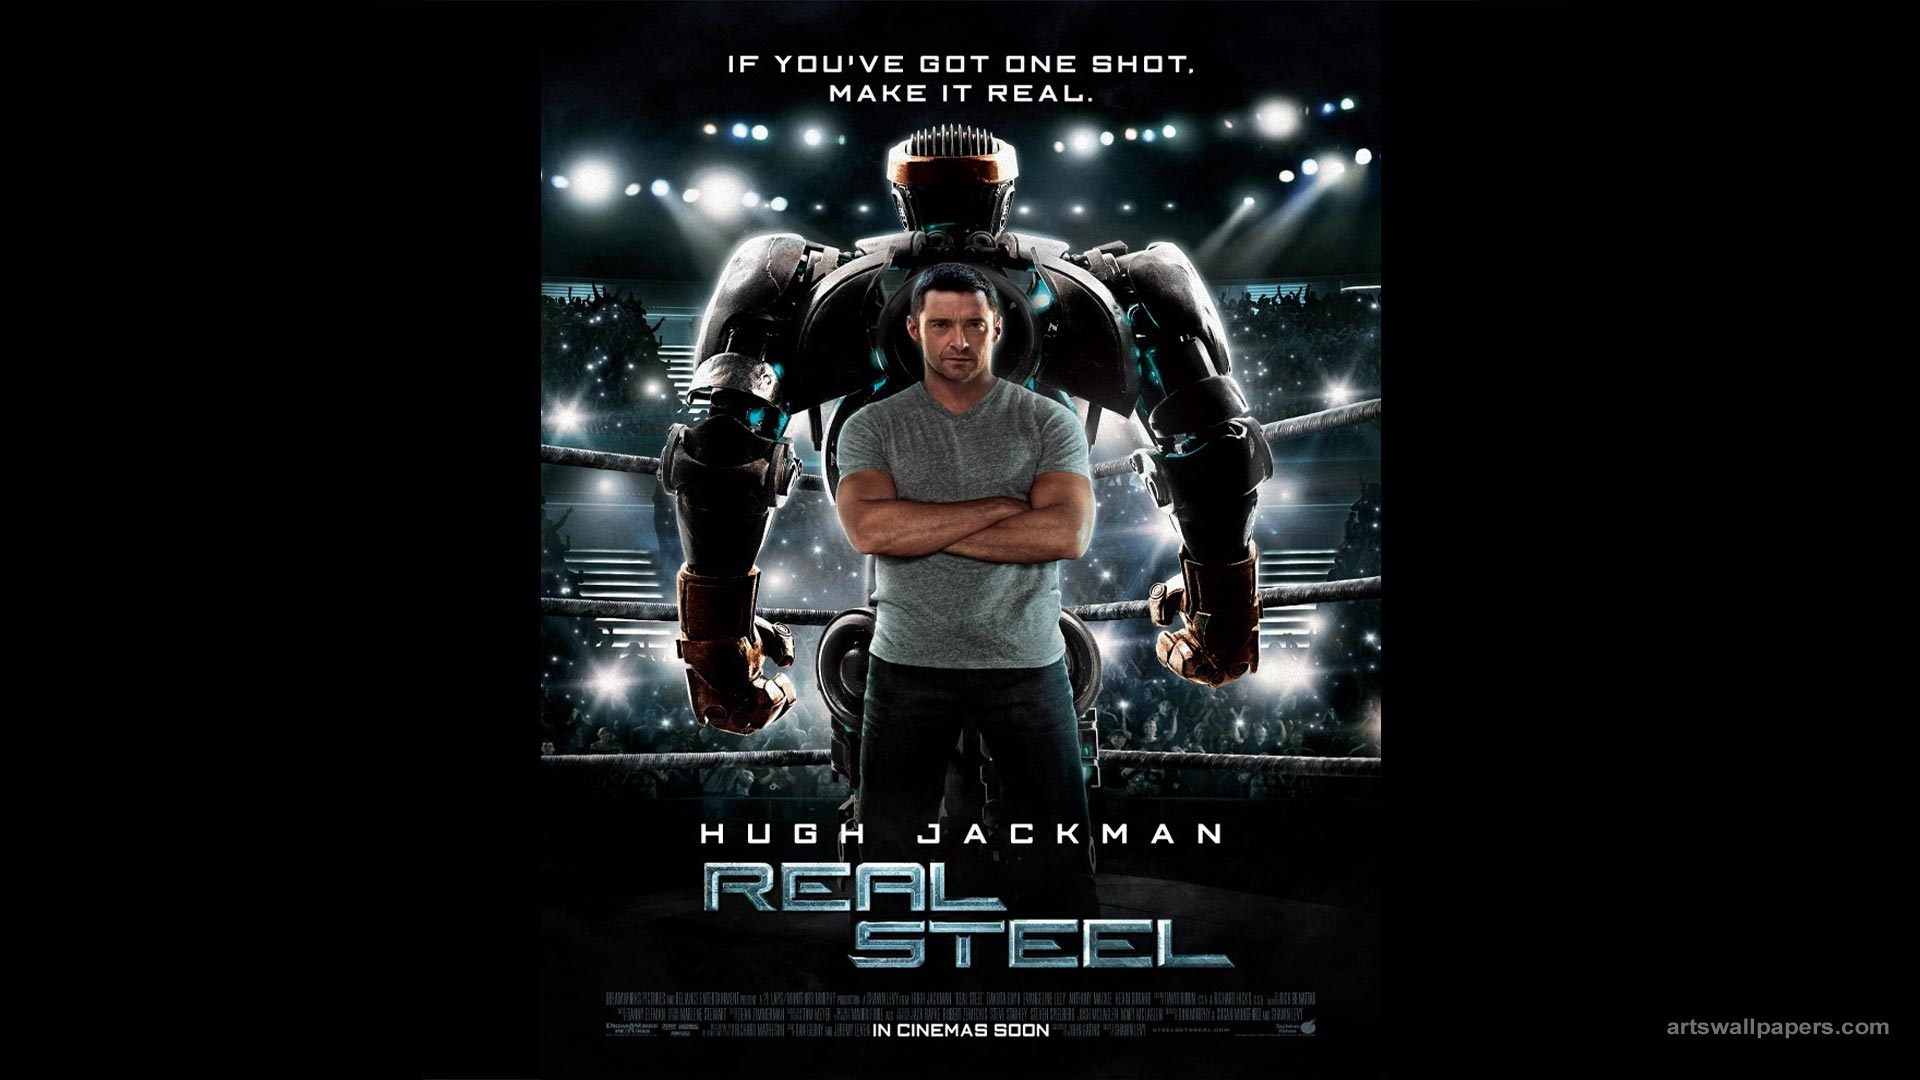 Real Steel Poster Wallpaper Real Steel 2011 Poster Movie Wallpaper 1920x1080